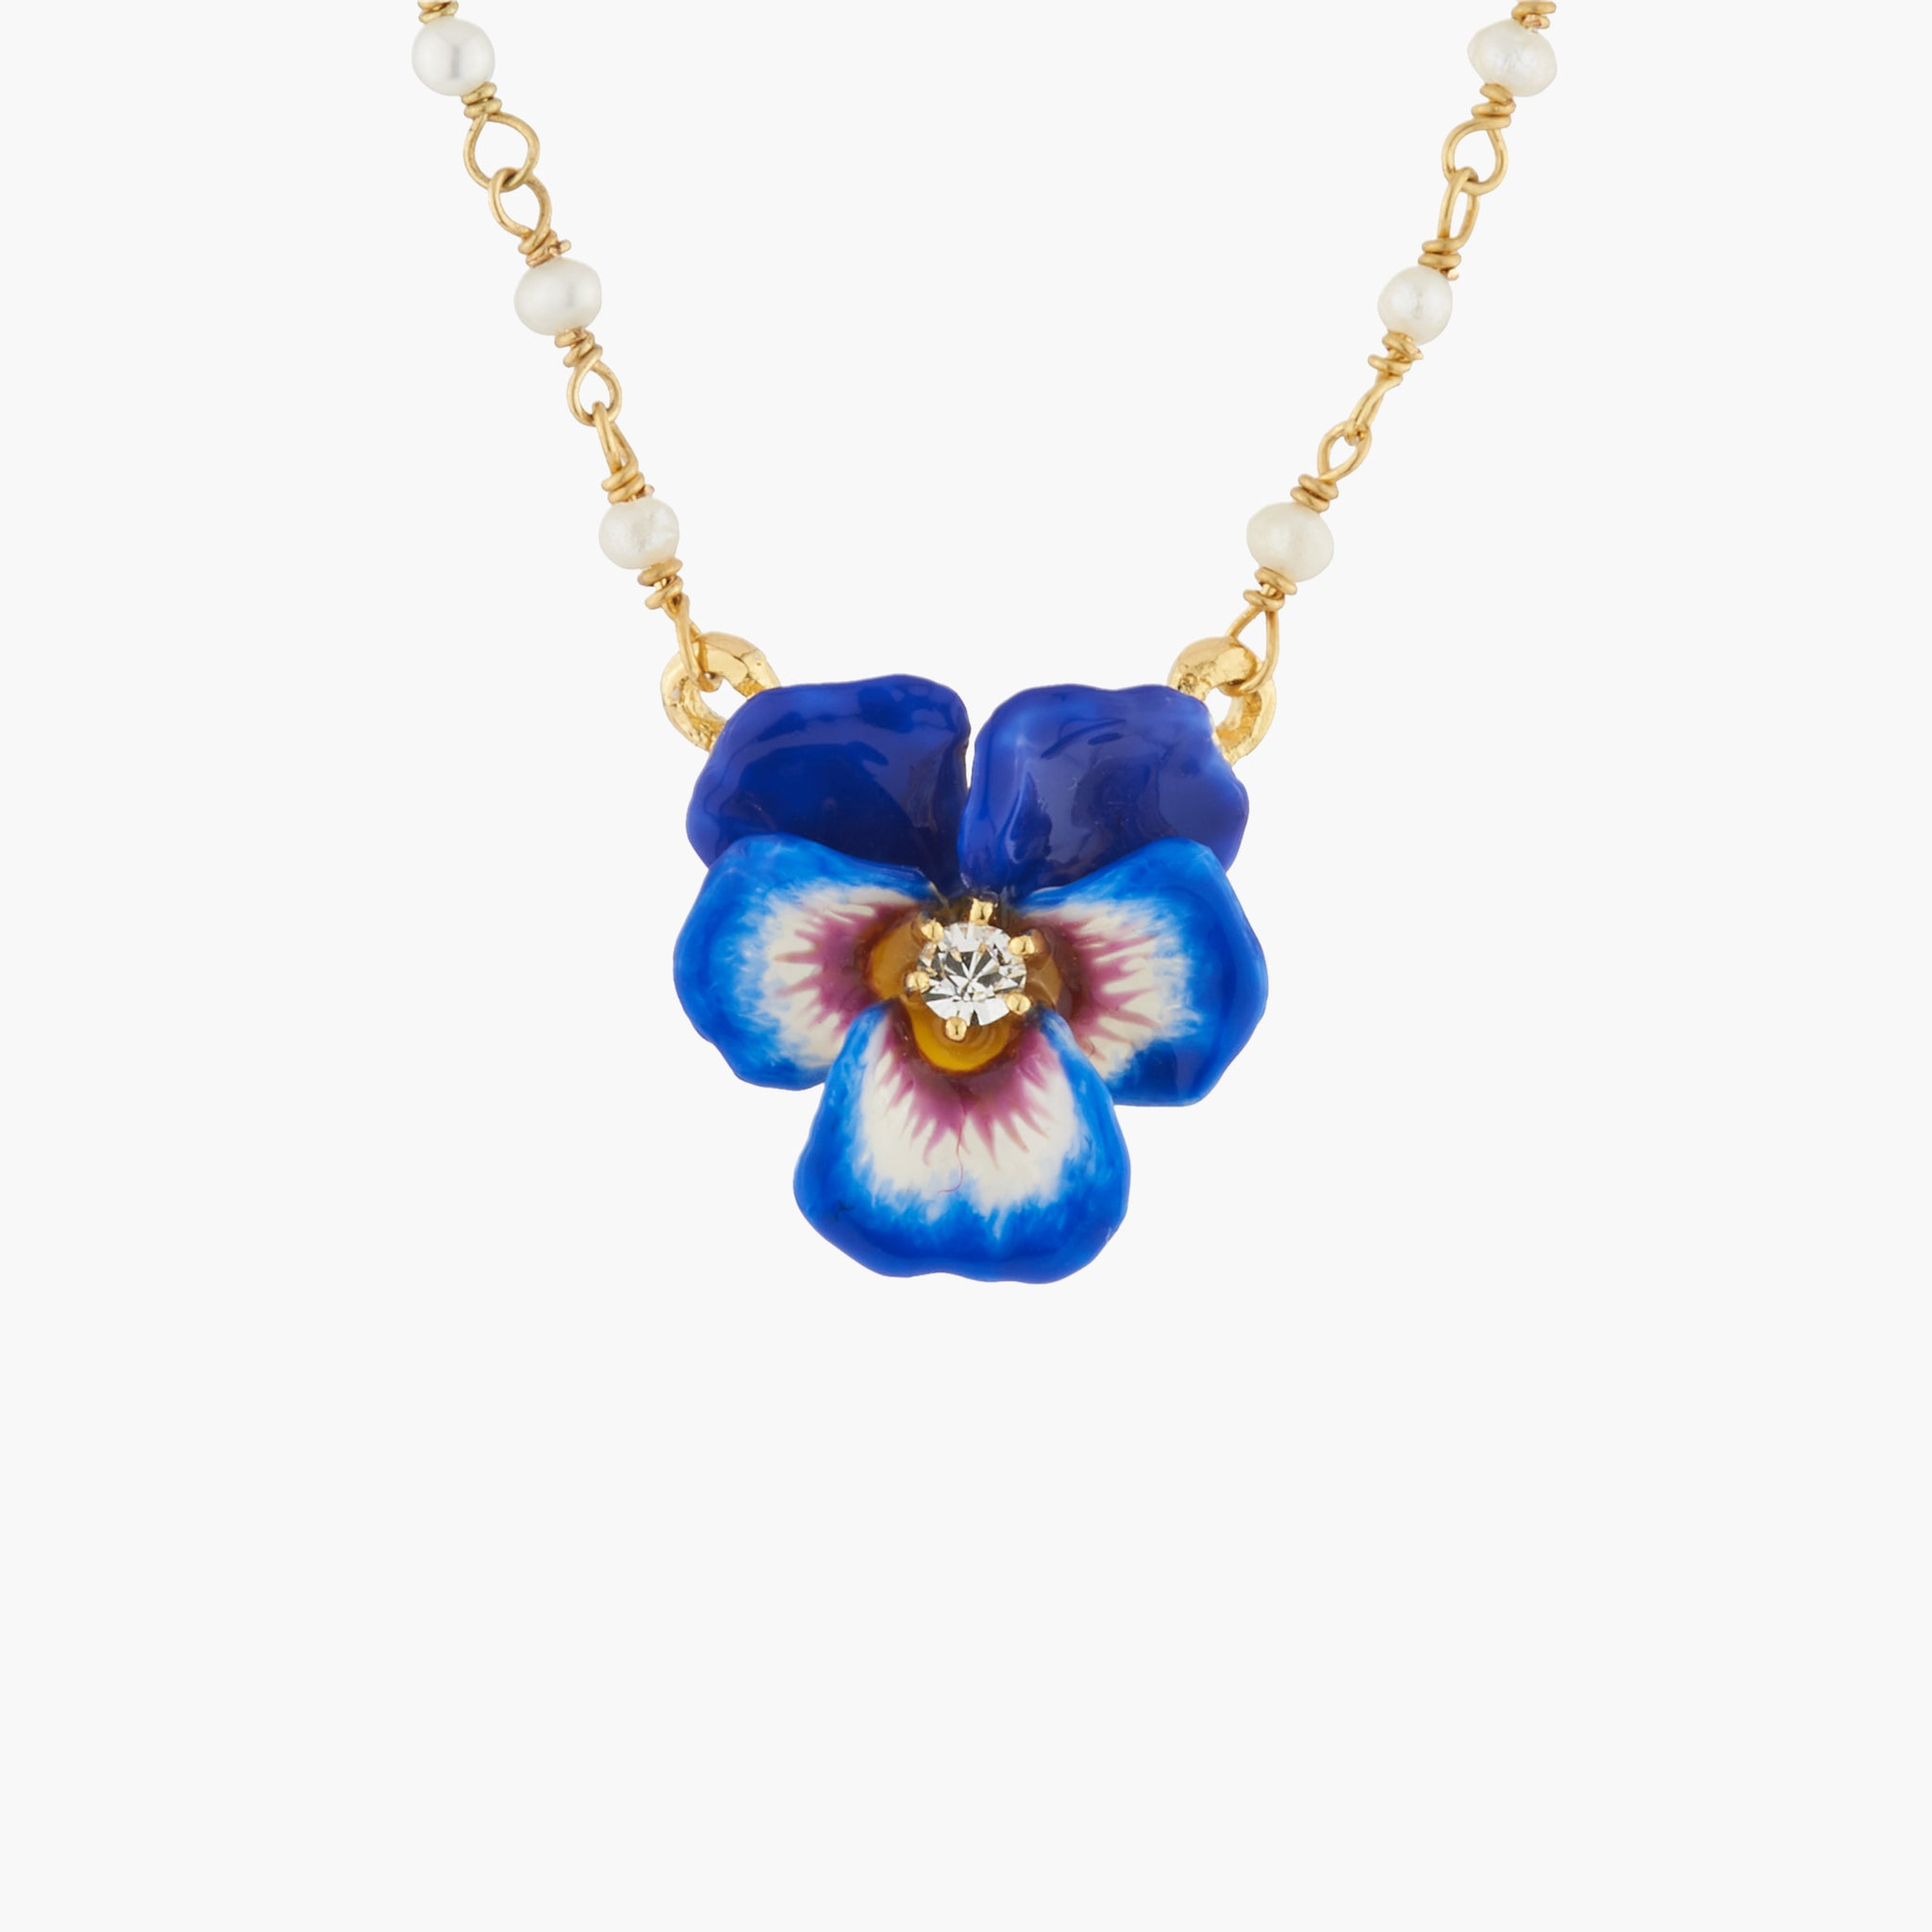 Blue Pansy with Faceted Crystal Pendant Necklace